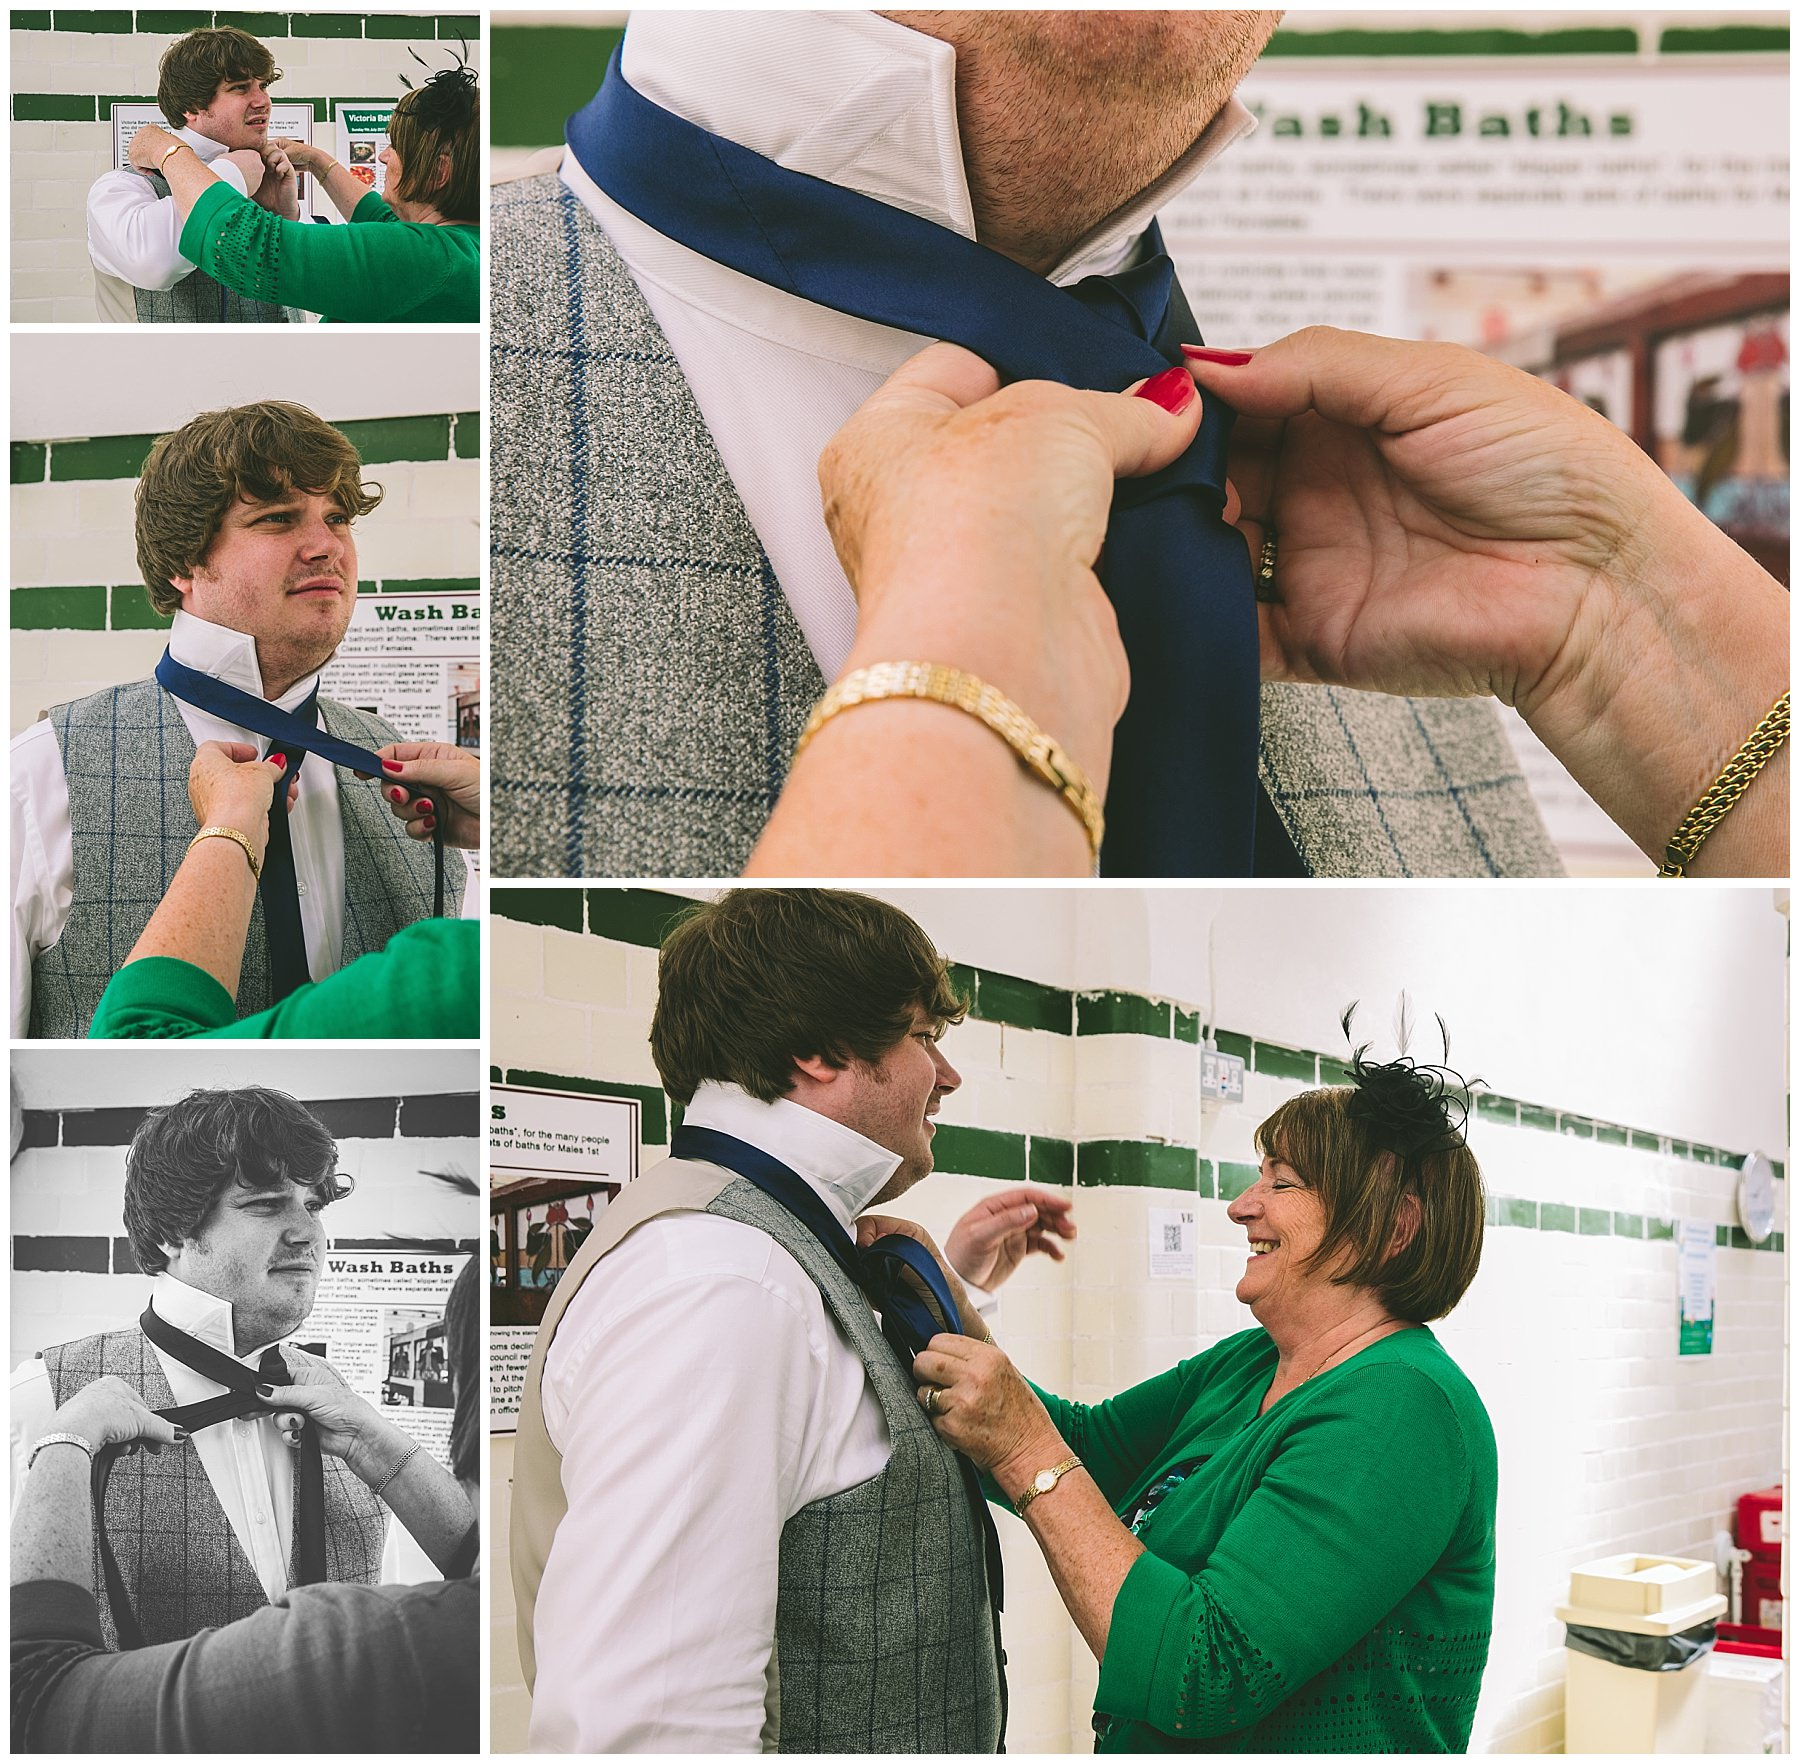 Grooms mum fixes his tie before the ceremony at Victoria Baths